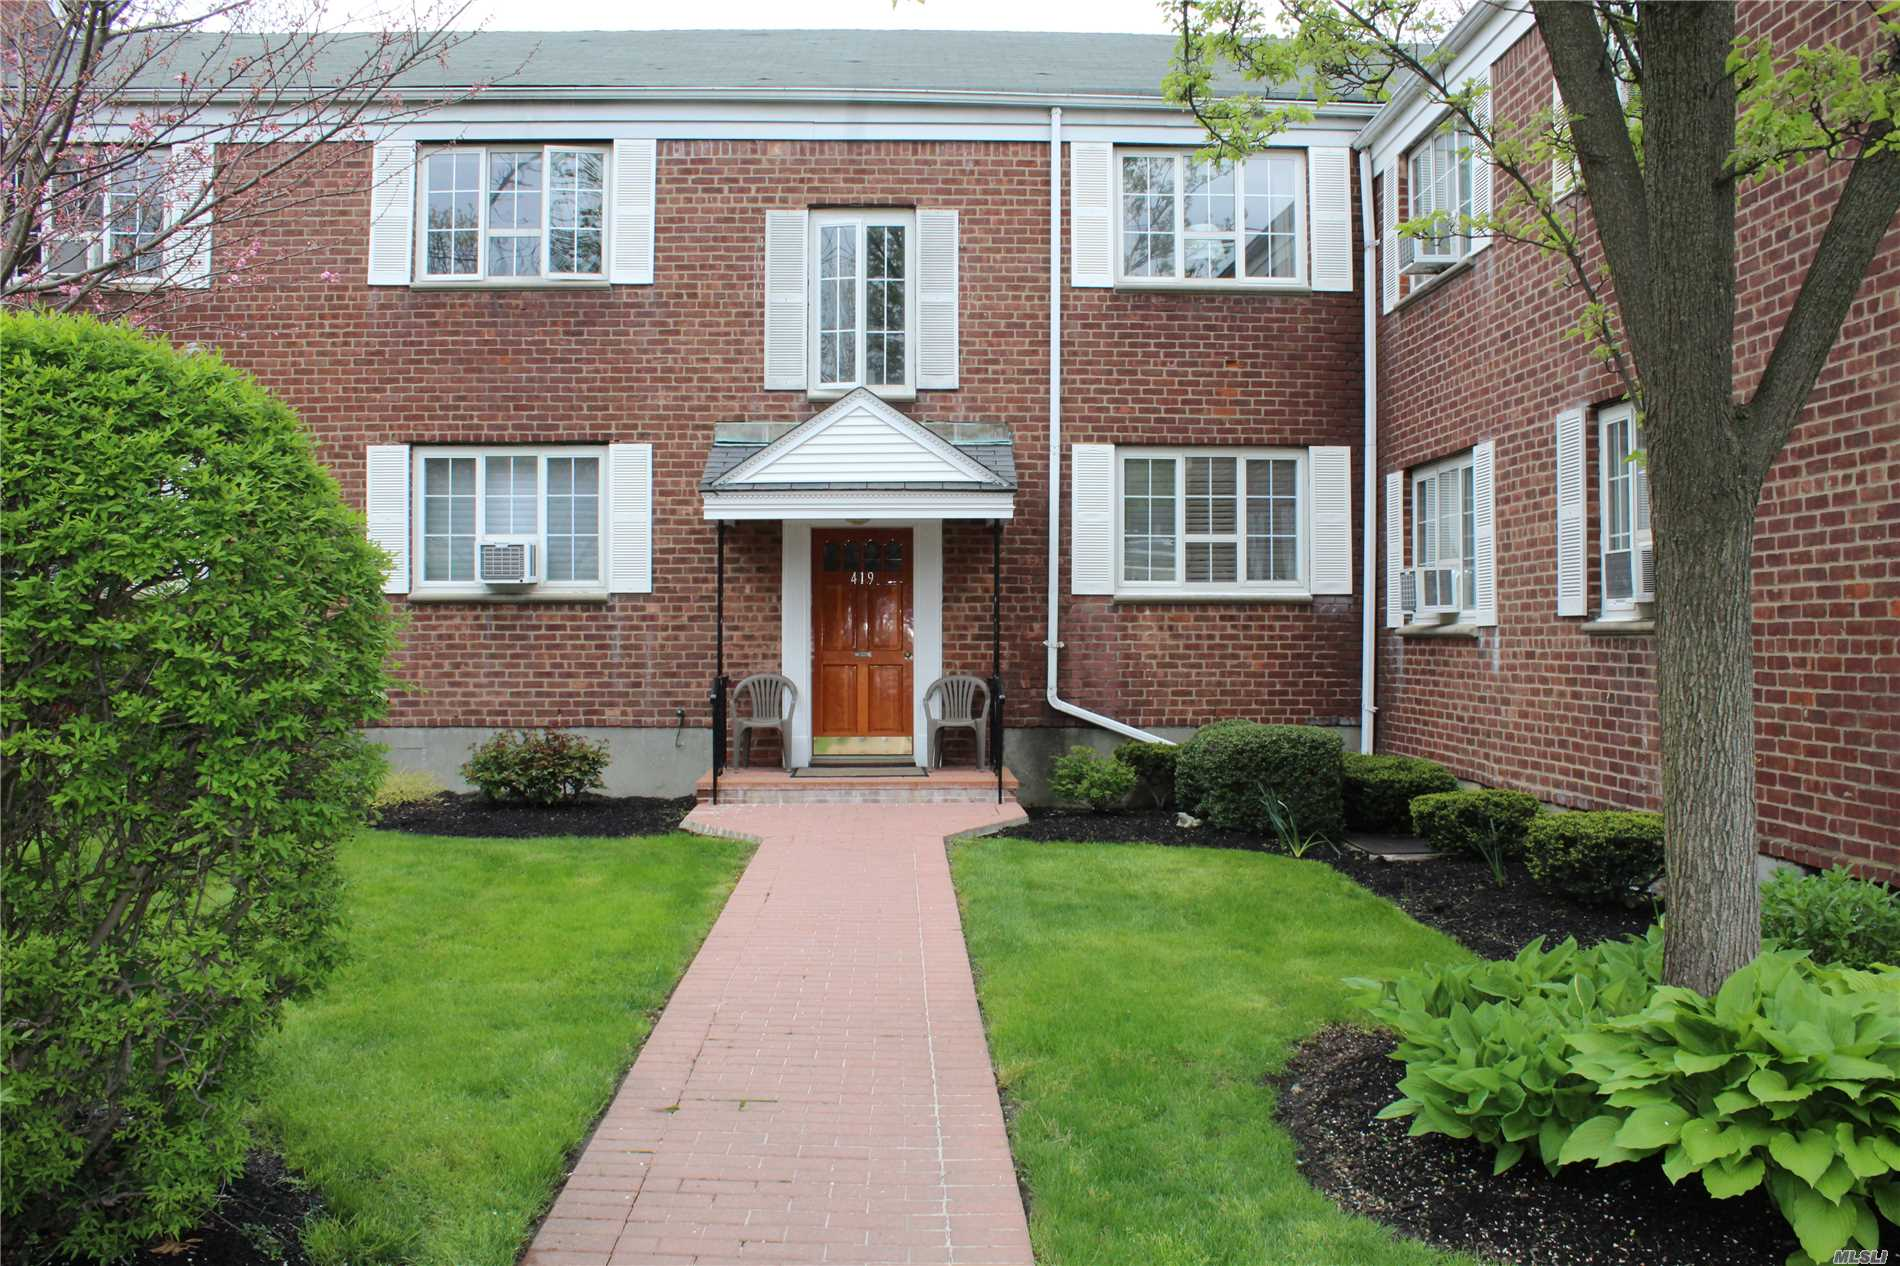 Highly Desirable 2 Bedroom Unit Located In The Heart Of Huntington Village! Don't Miss This Sunny Unit With Updated Bath, Wood Floors And Beautiful Views Of Huntington And The Pool Area. Maintenance Fee Includes Heat, Water, Taxes, Landscaping, Snow Removal, Pool And Playground. Garage (Fee), Laundry On Site. Close To Shopping, Restaurants, Beaches and LIRR. A Must See!